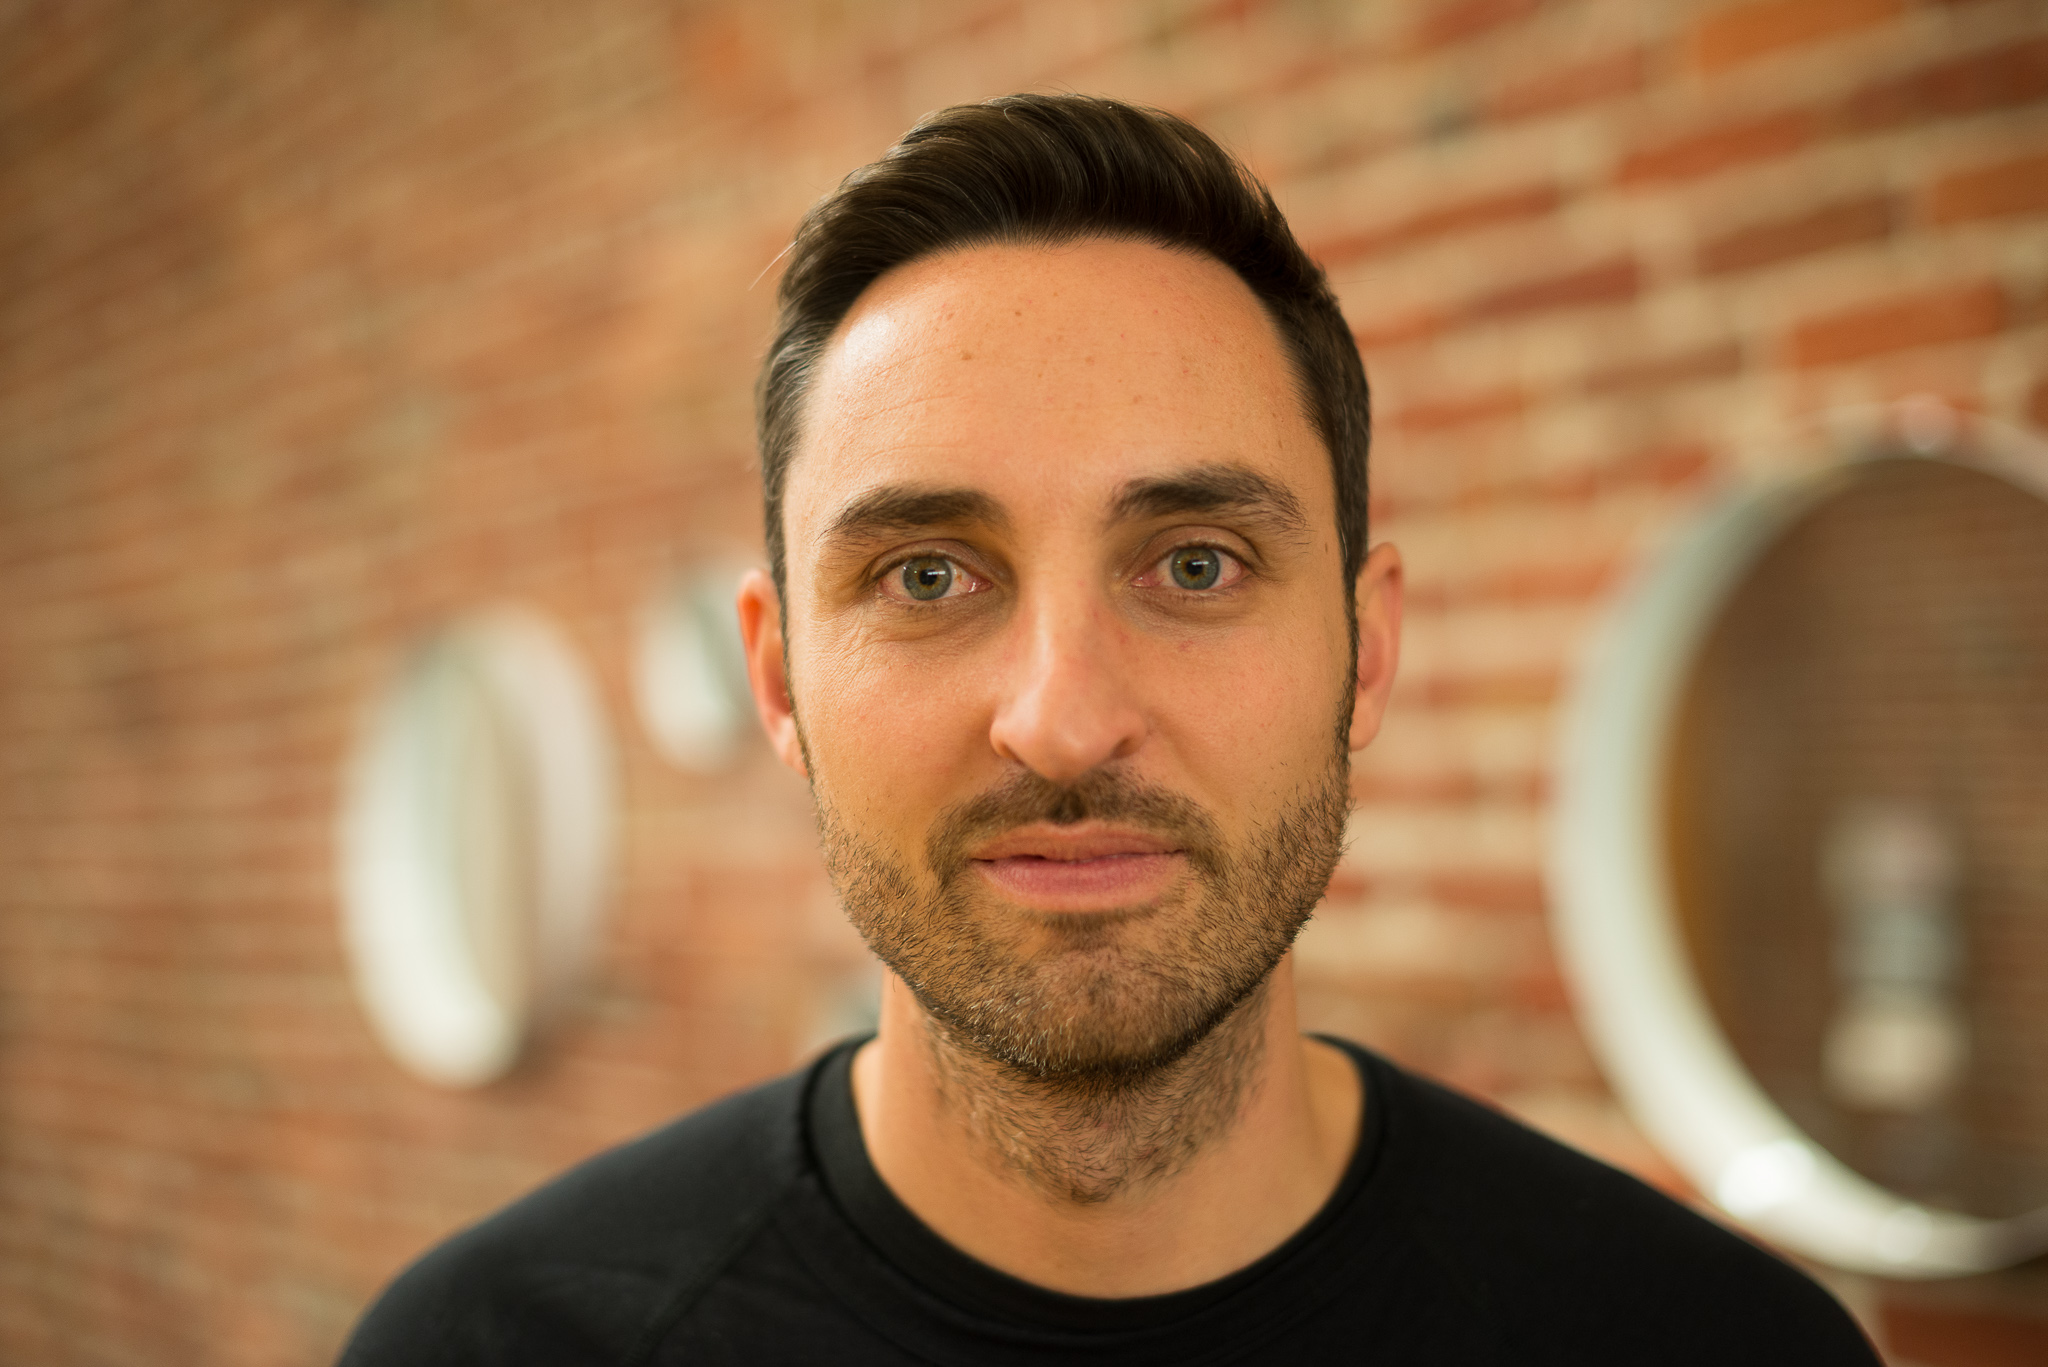 Brian Balfour: Founder/CEO @ Reforge. Former VP Growth @ HubSpot.